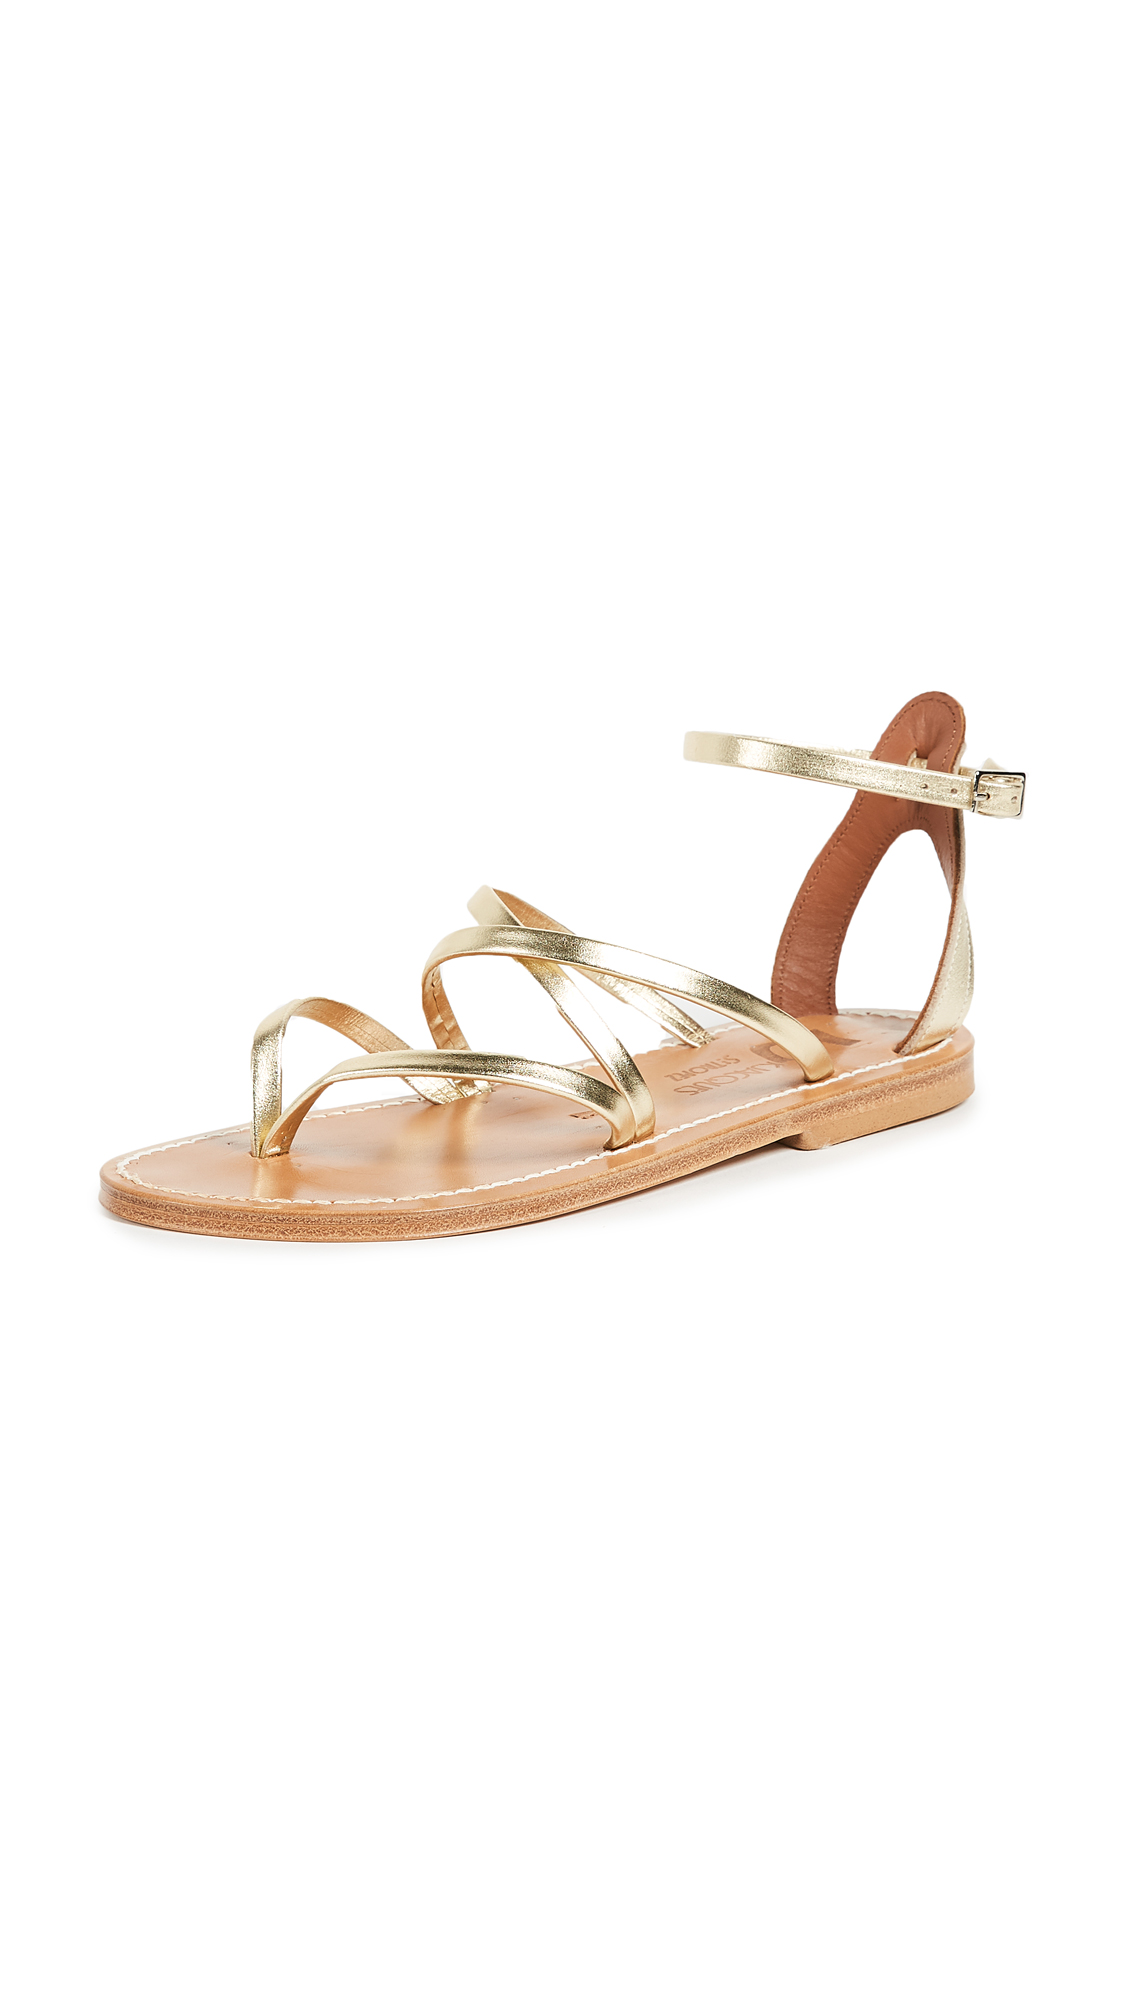 K. Jacques Epicure Sandals - Lame Platine